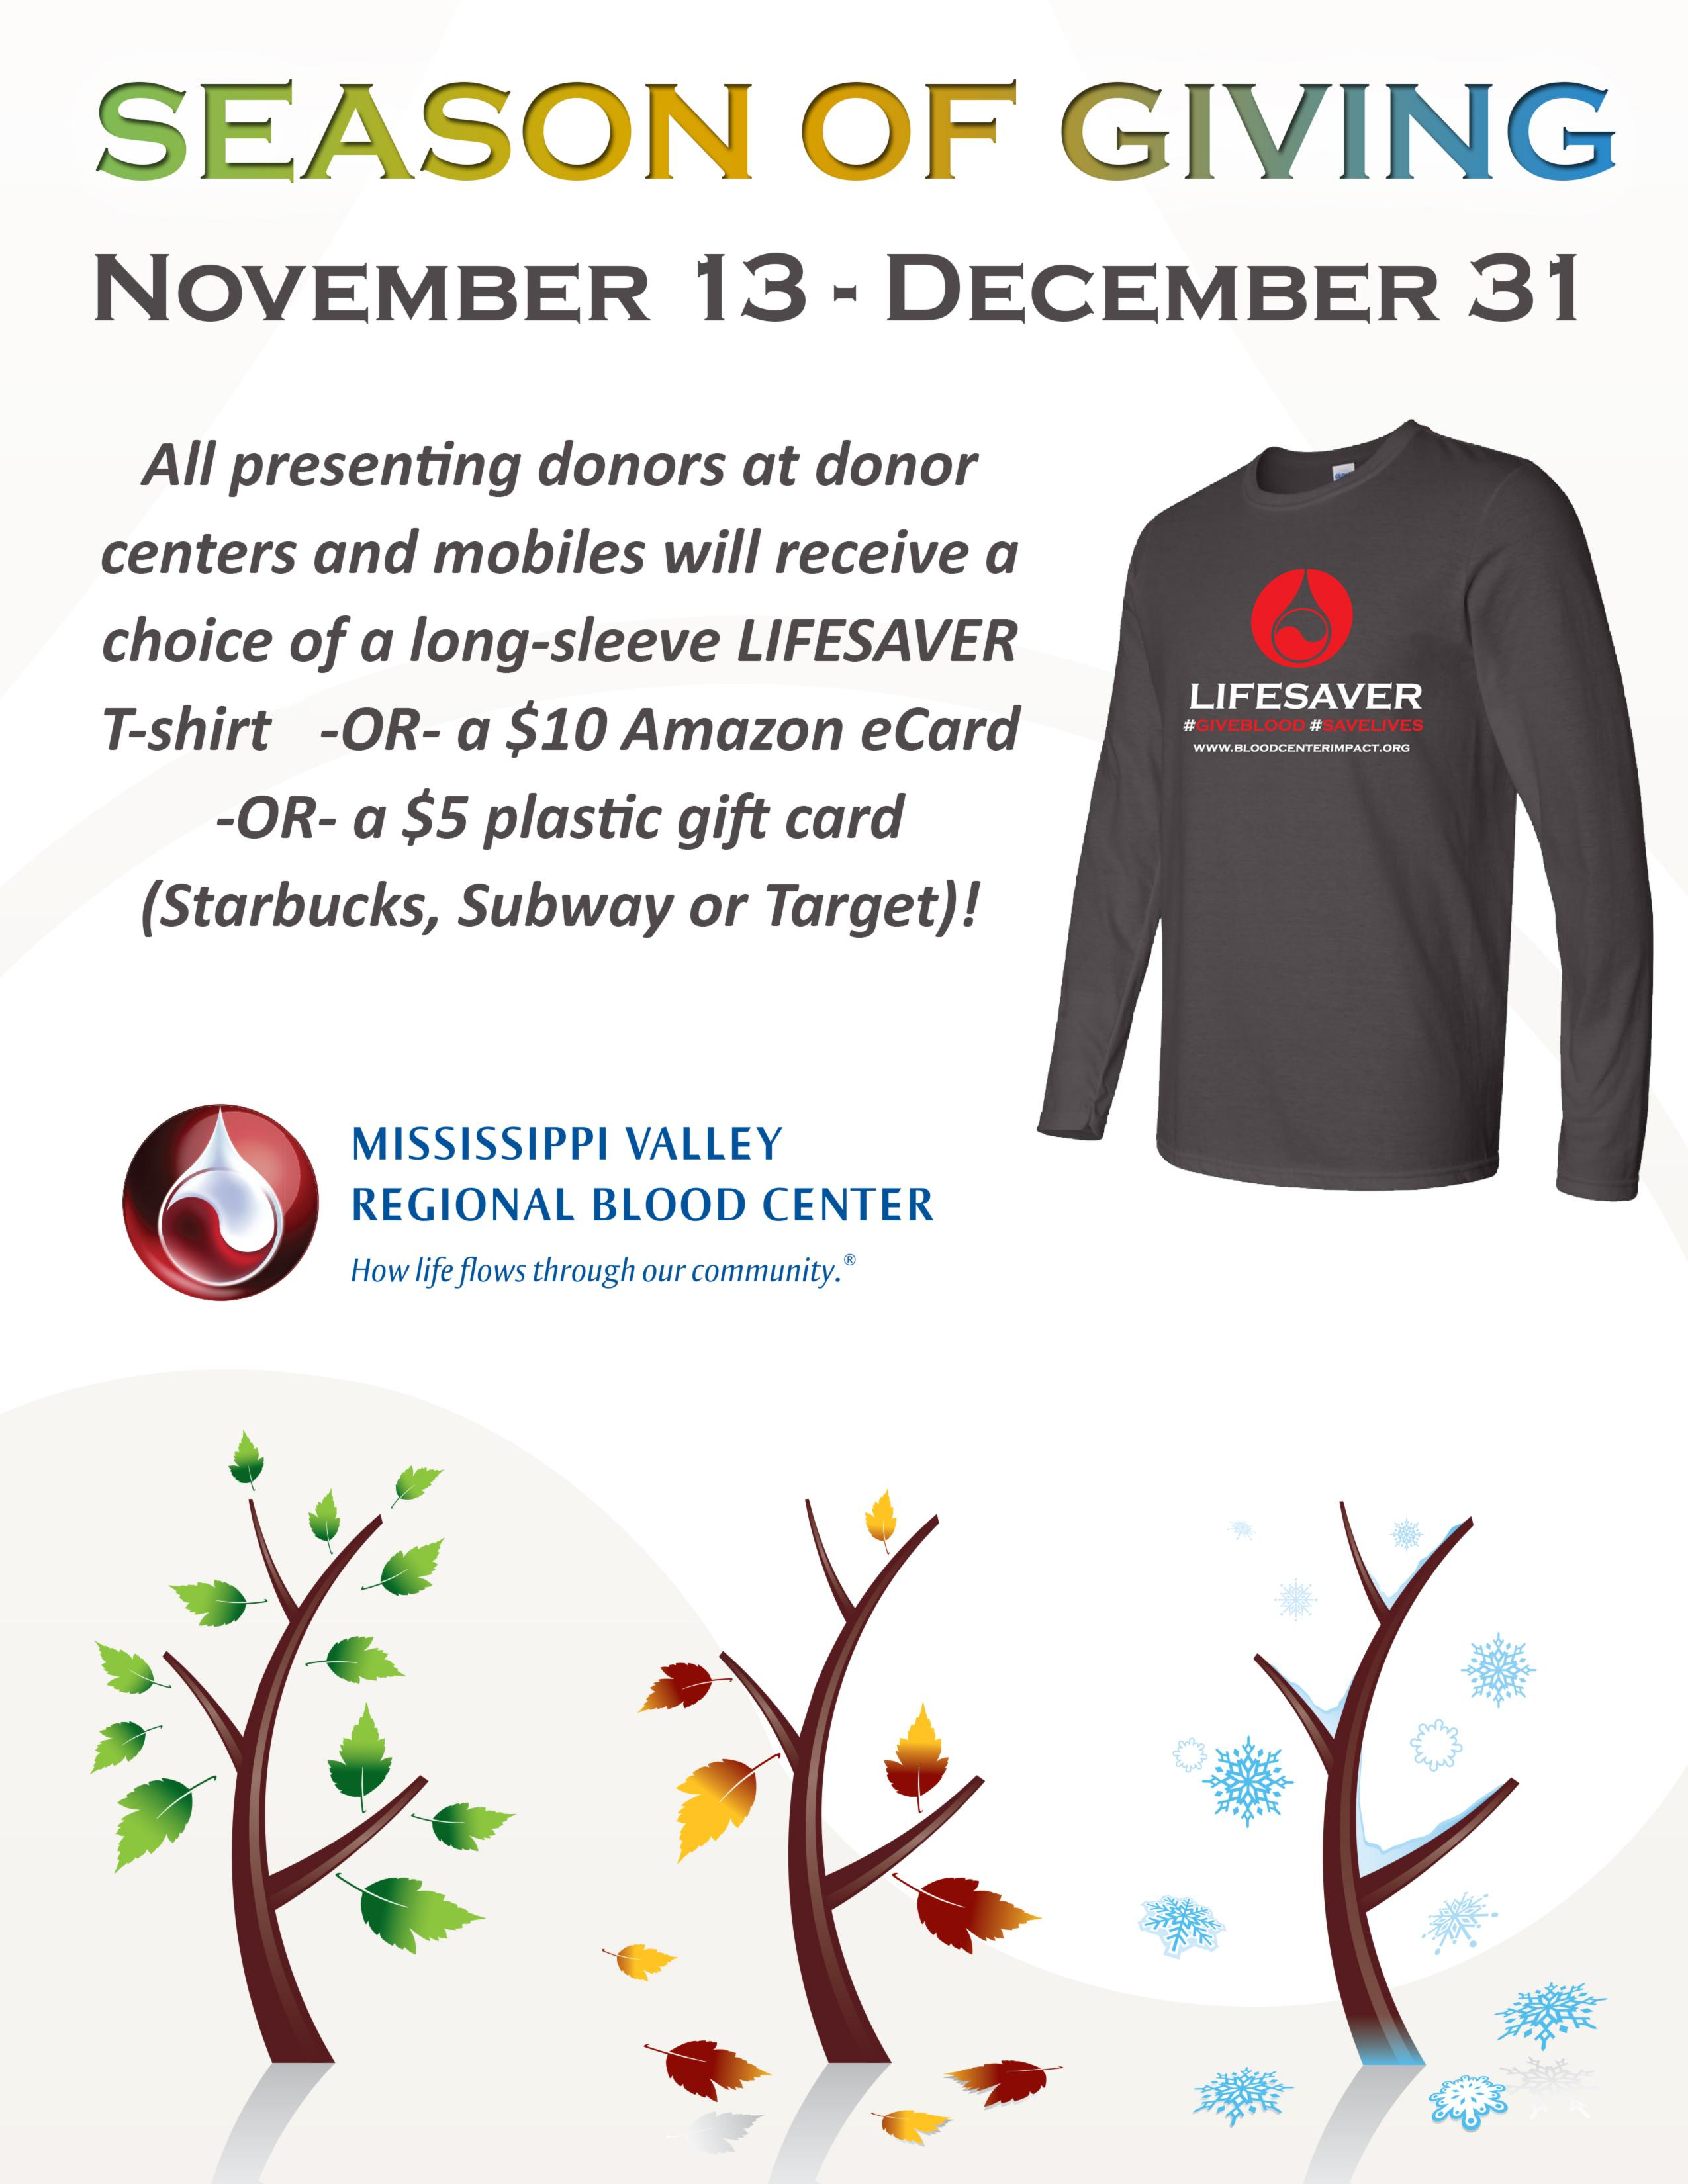 Blood Drive Promo - Free T-shirt with blood donation